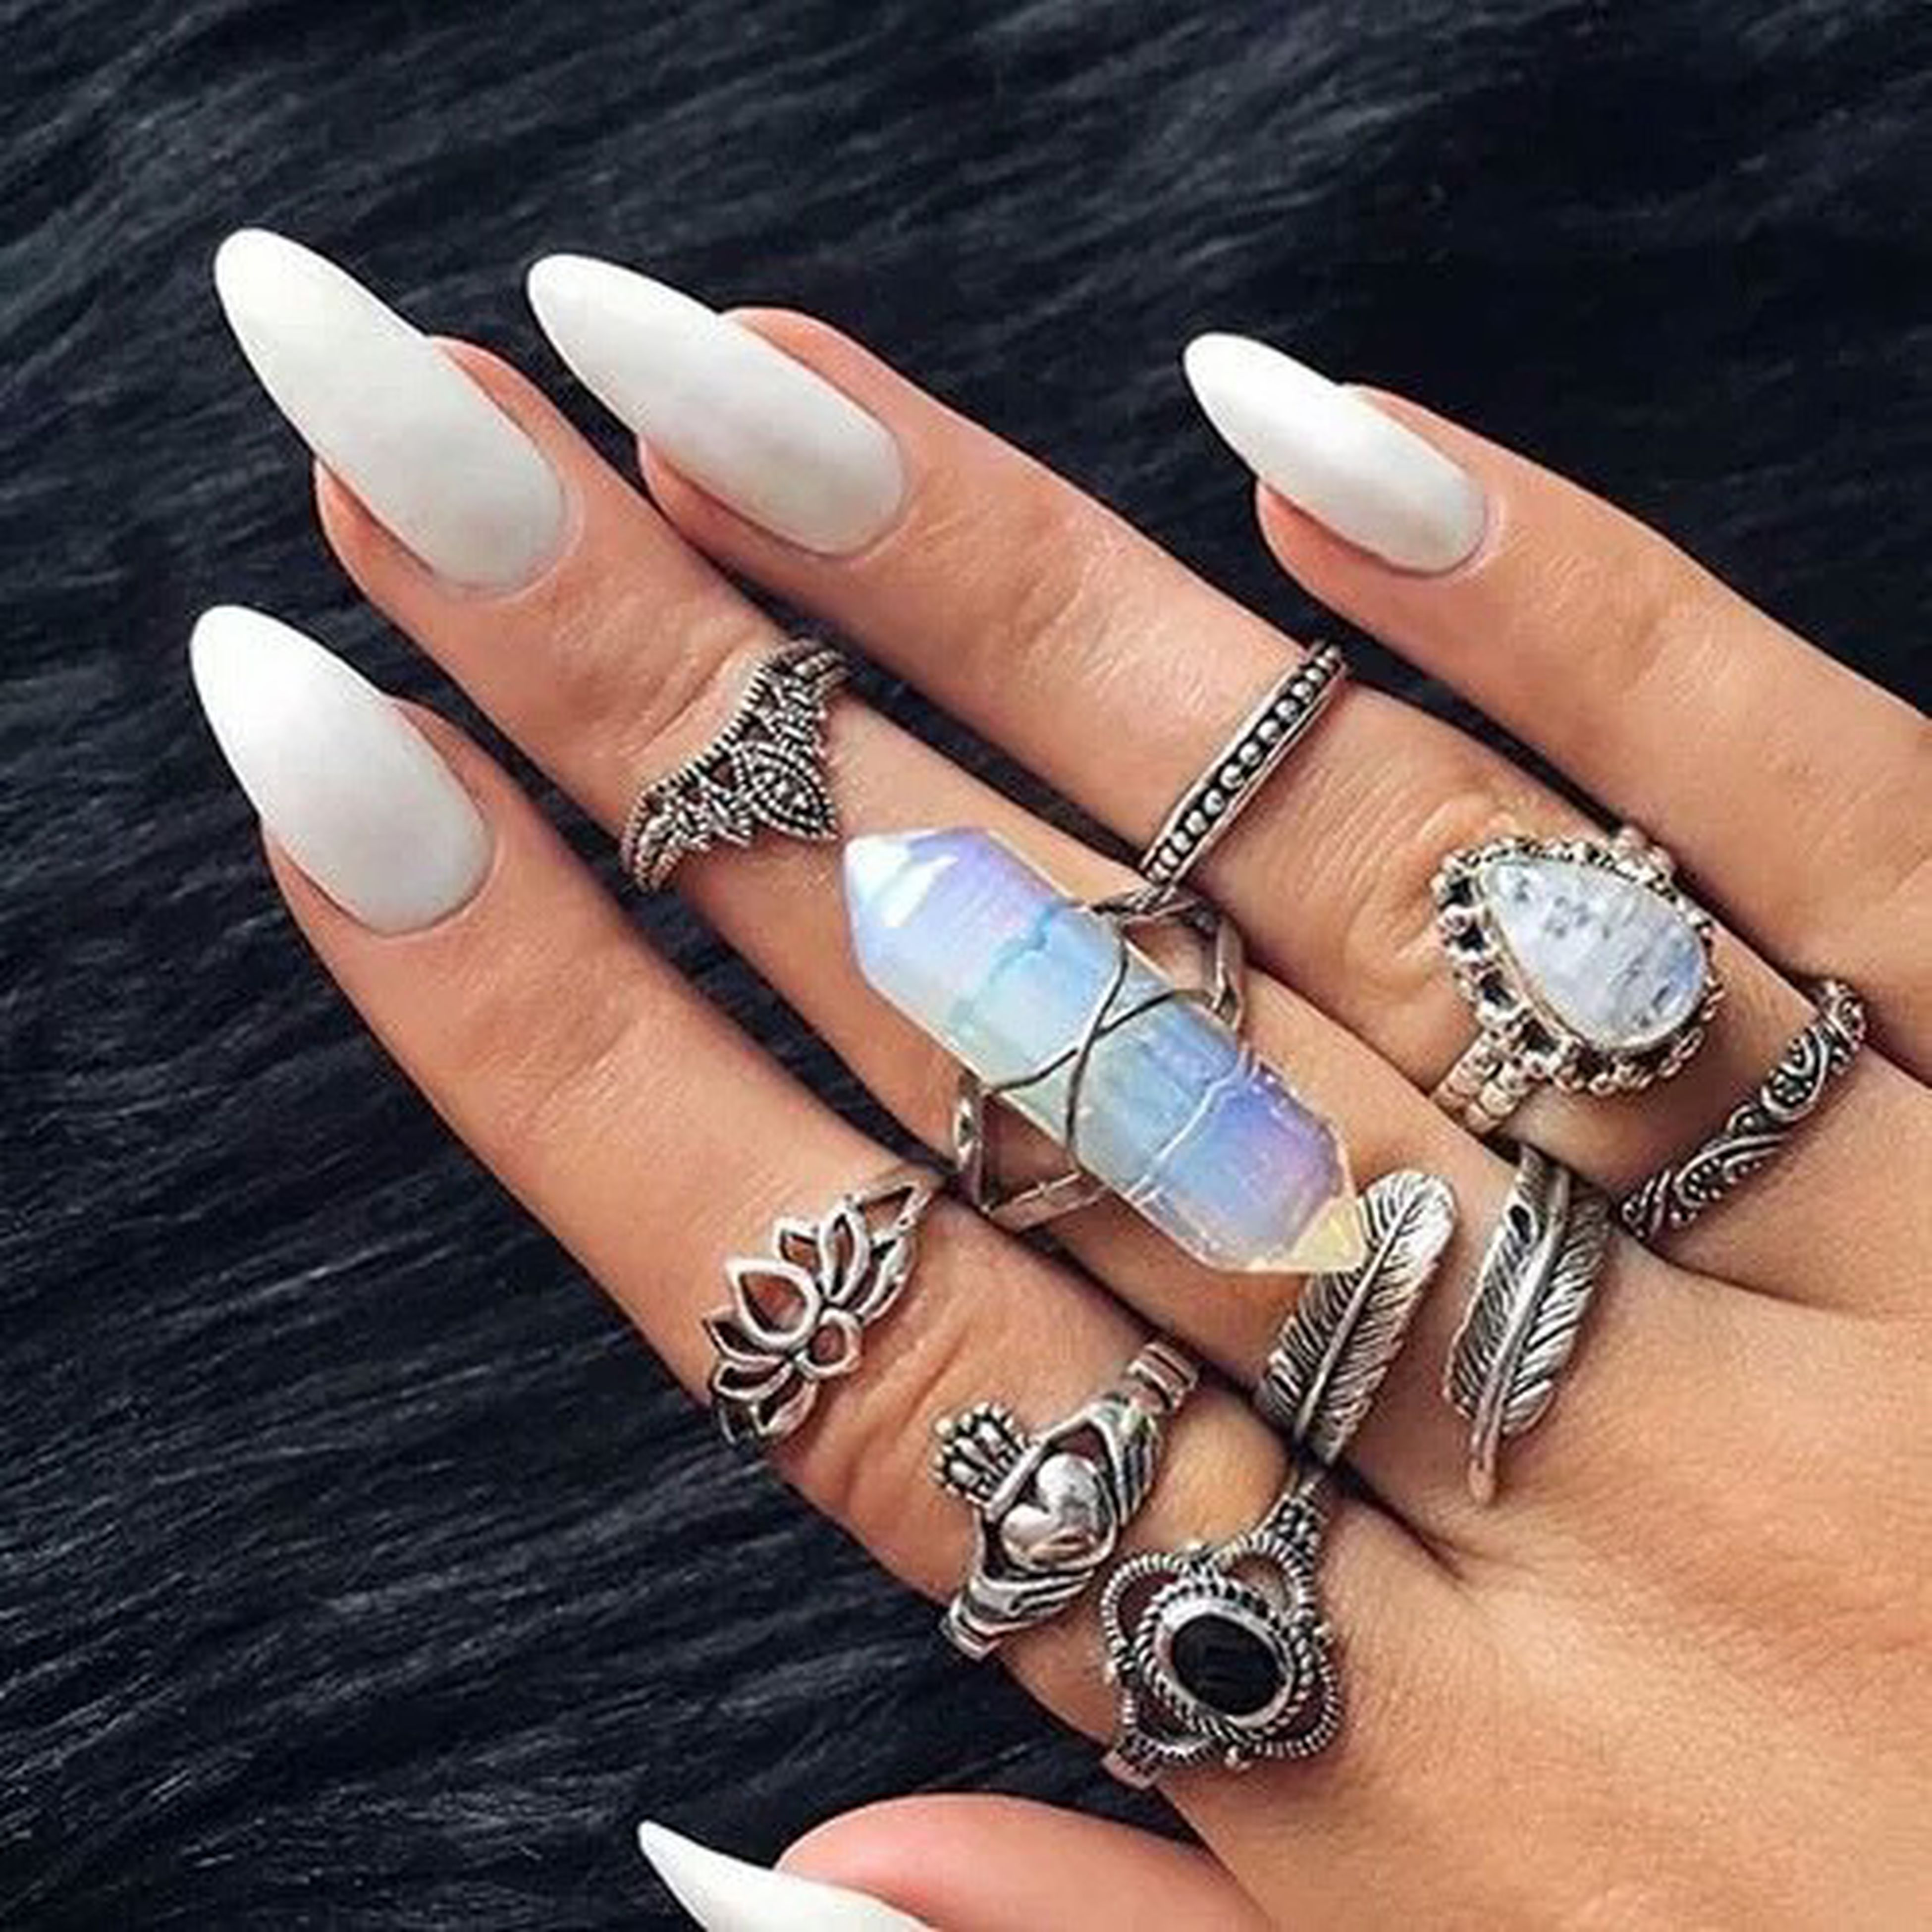 person, part of, indoors, high angle view, personal perspective, human finger, holding, table, cropped, close-up, unrecognizable person, jewelry, nail polish, fashion, leisure activity, lifestyles, ring